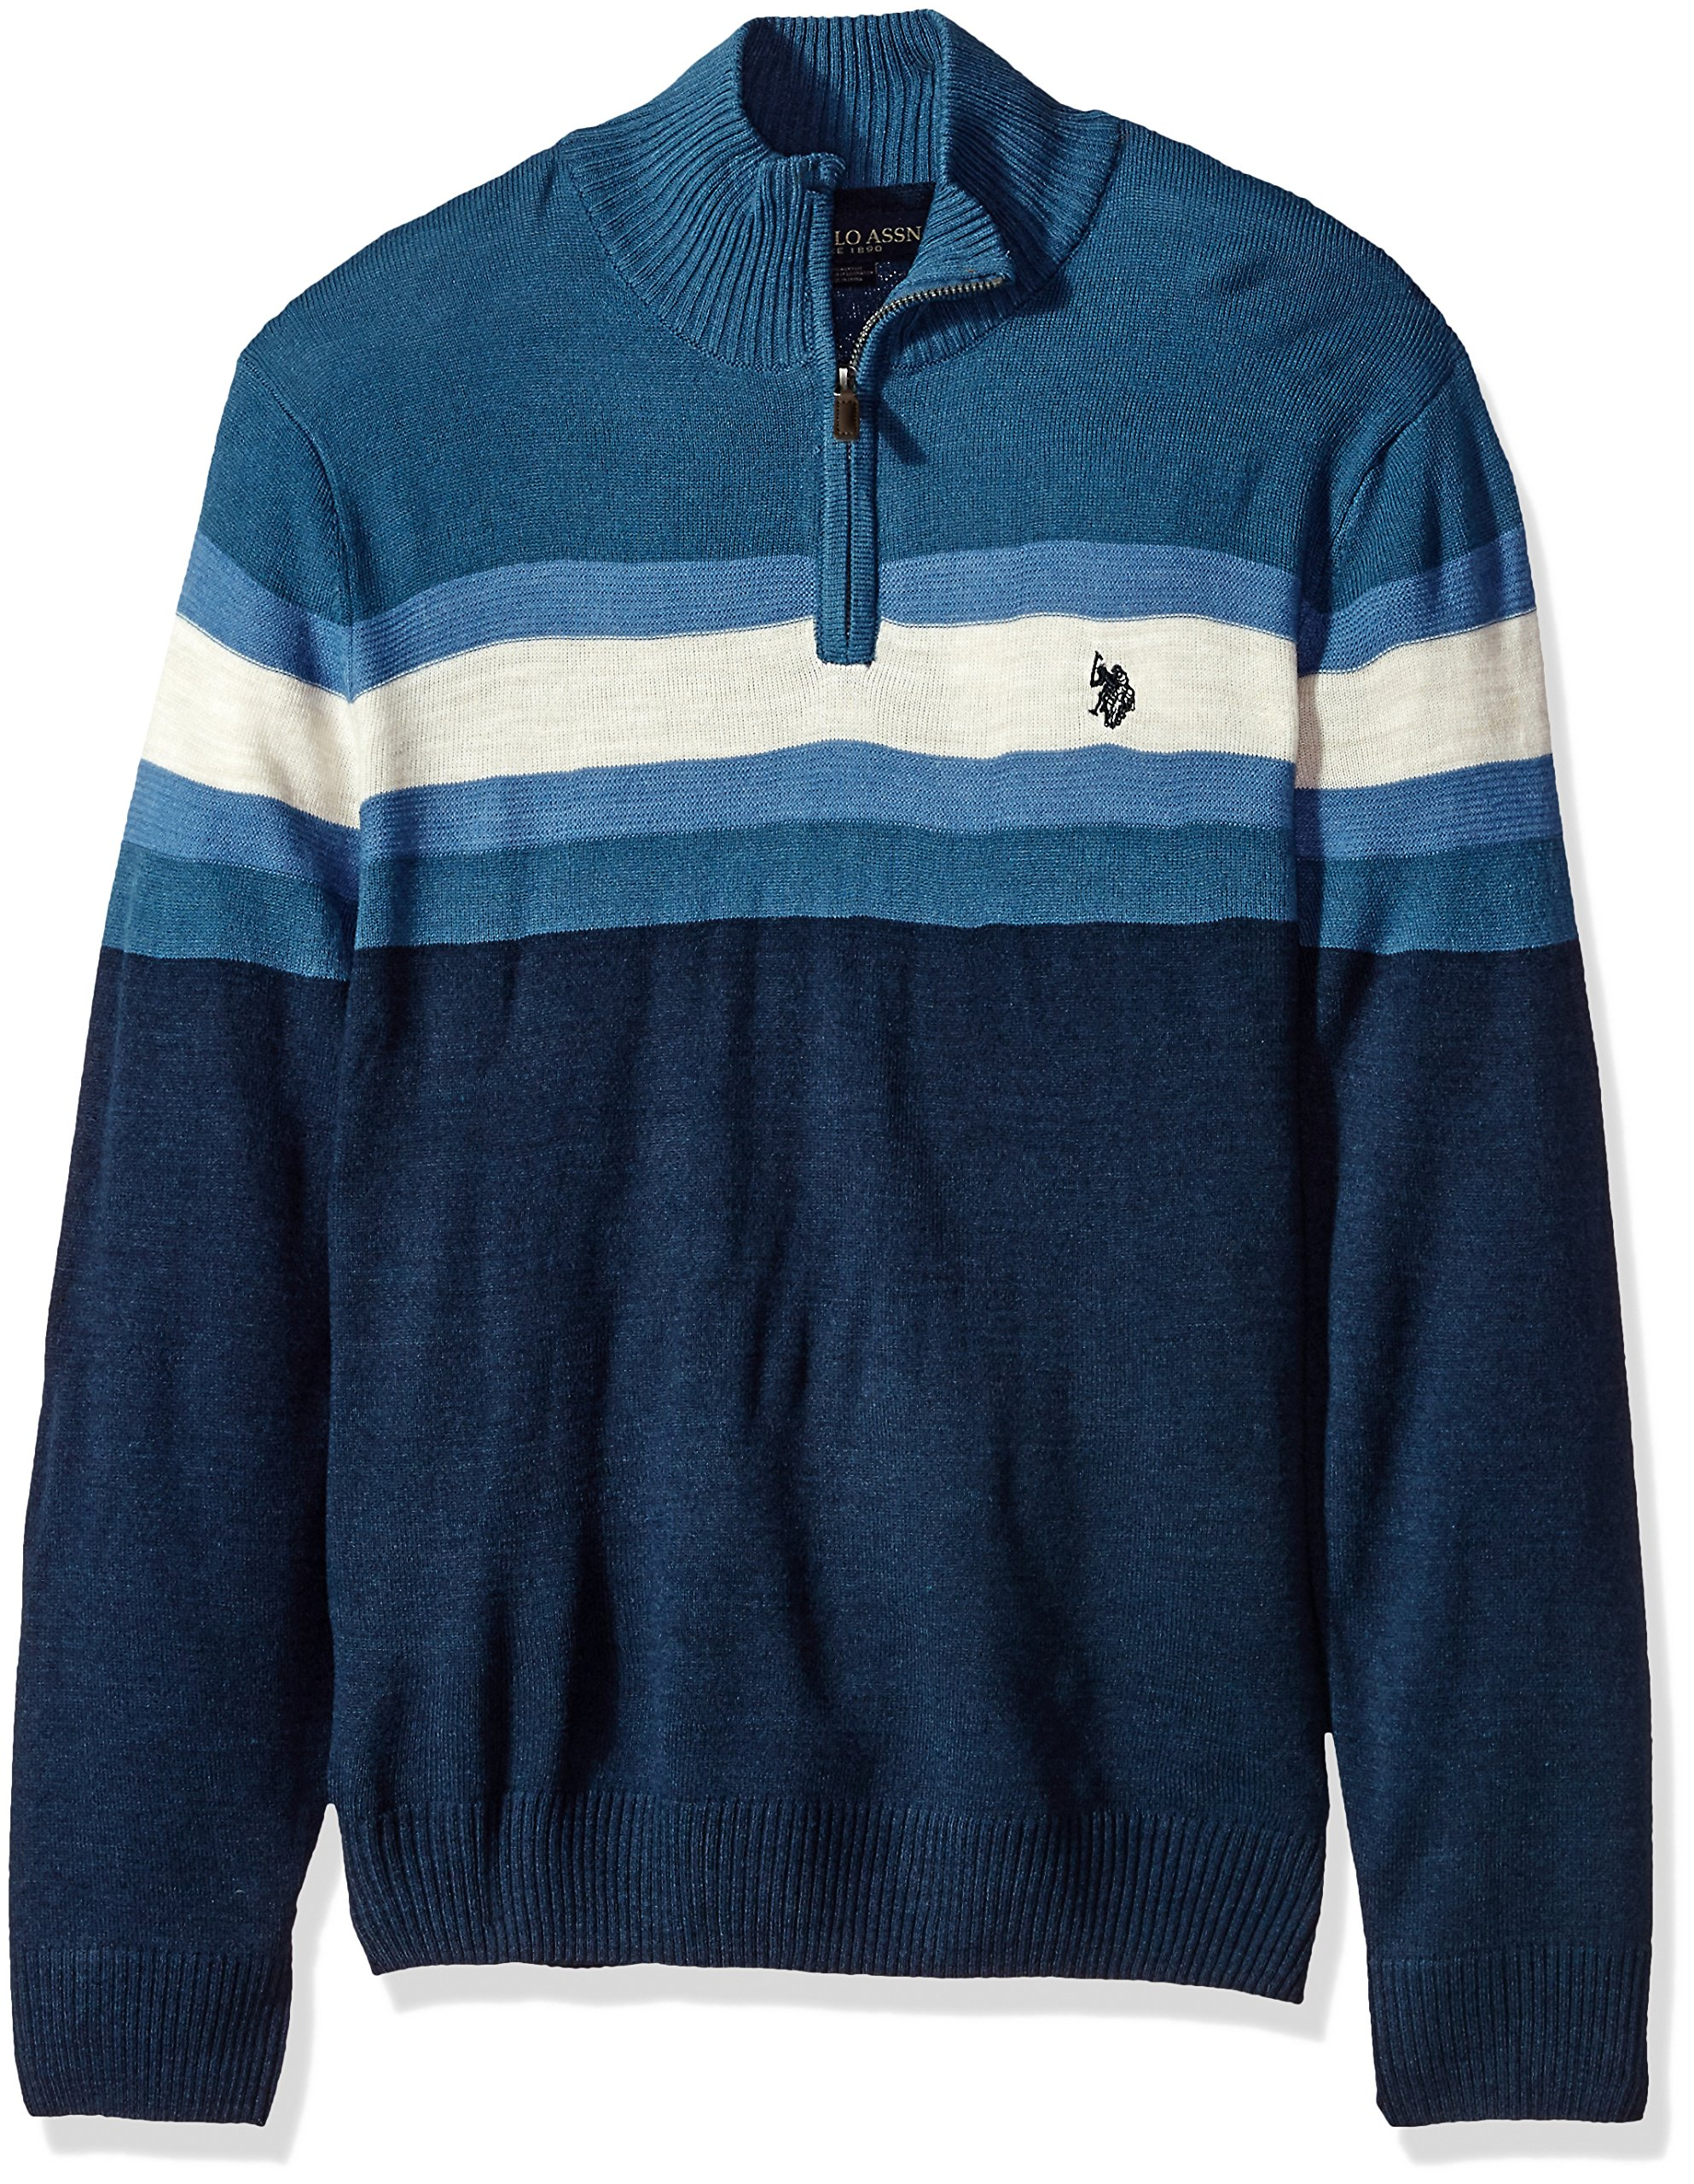 Mens Double Striped 1//4 Zip Sweater Sweater Polo Assn U.S